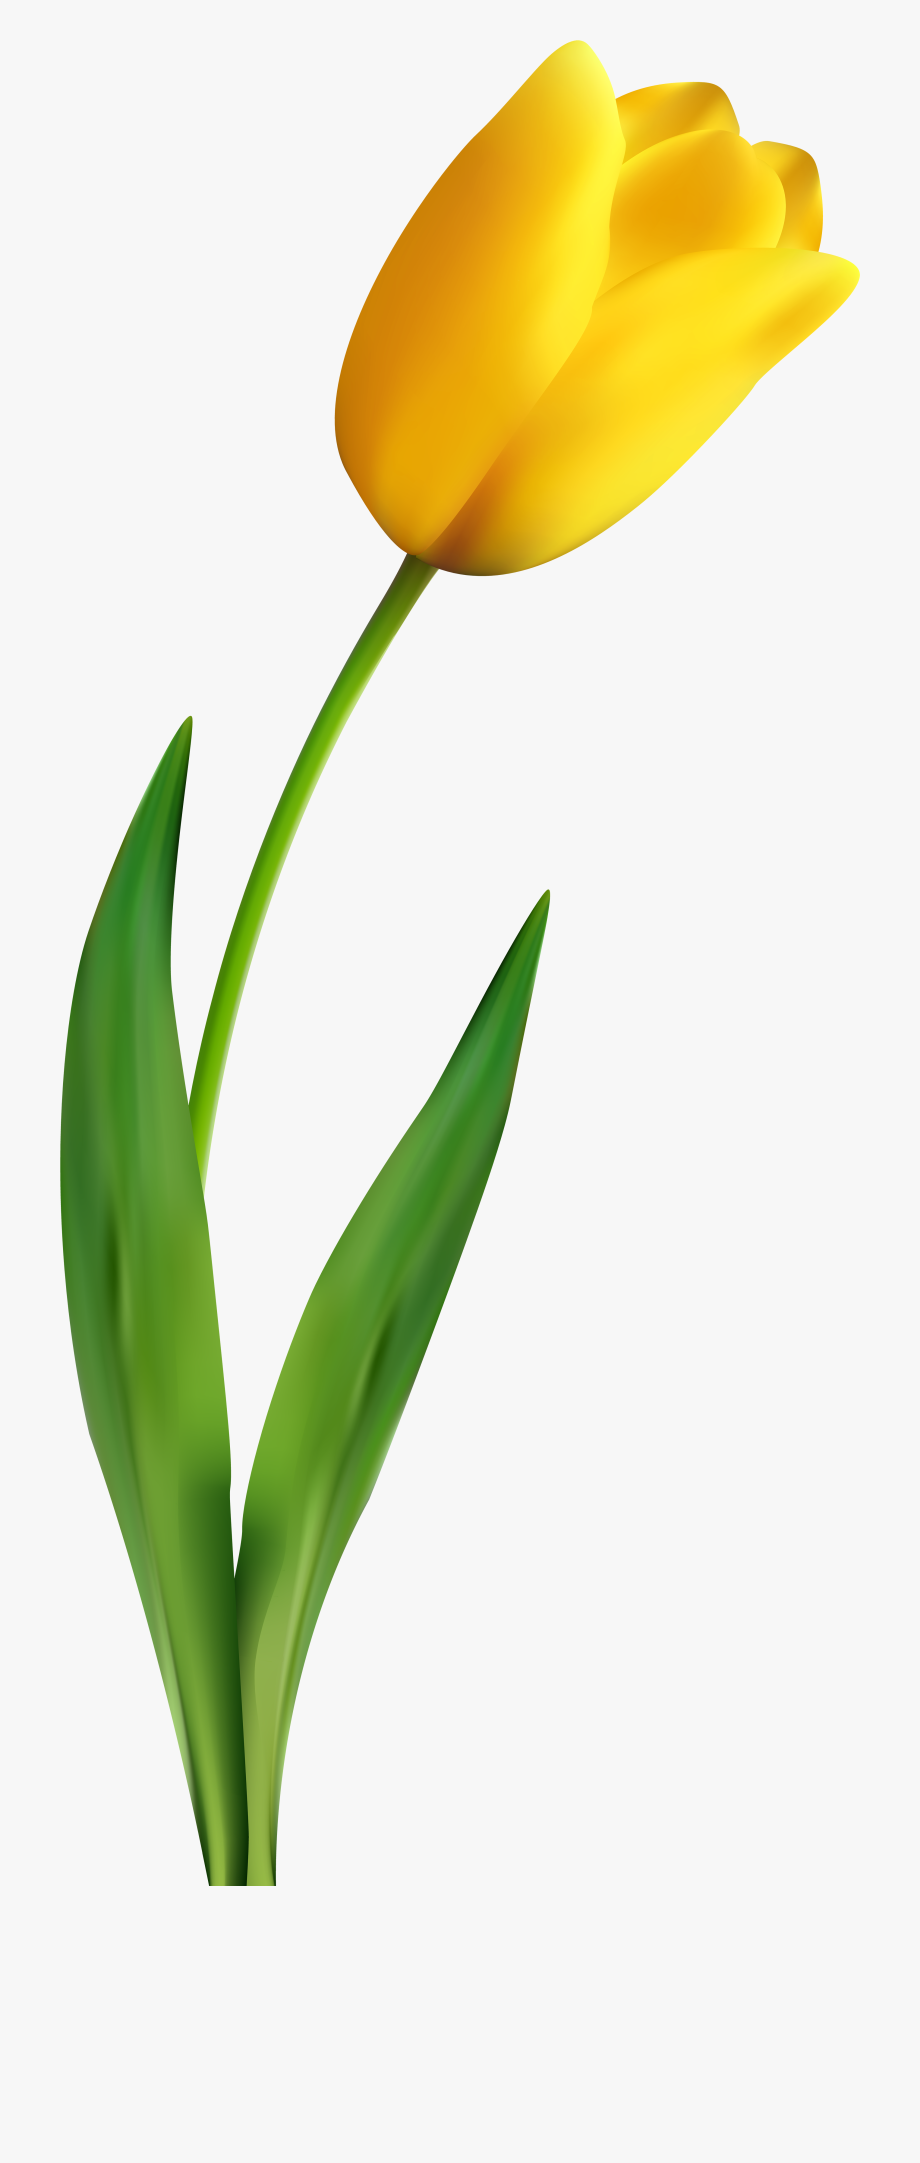 A Yellow Tulip, Tulips, Flowers Png Image And Clipart.